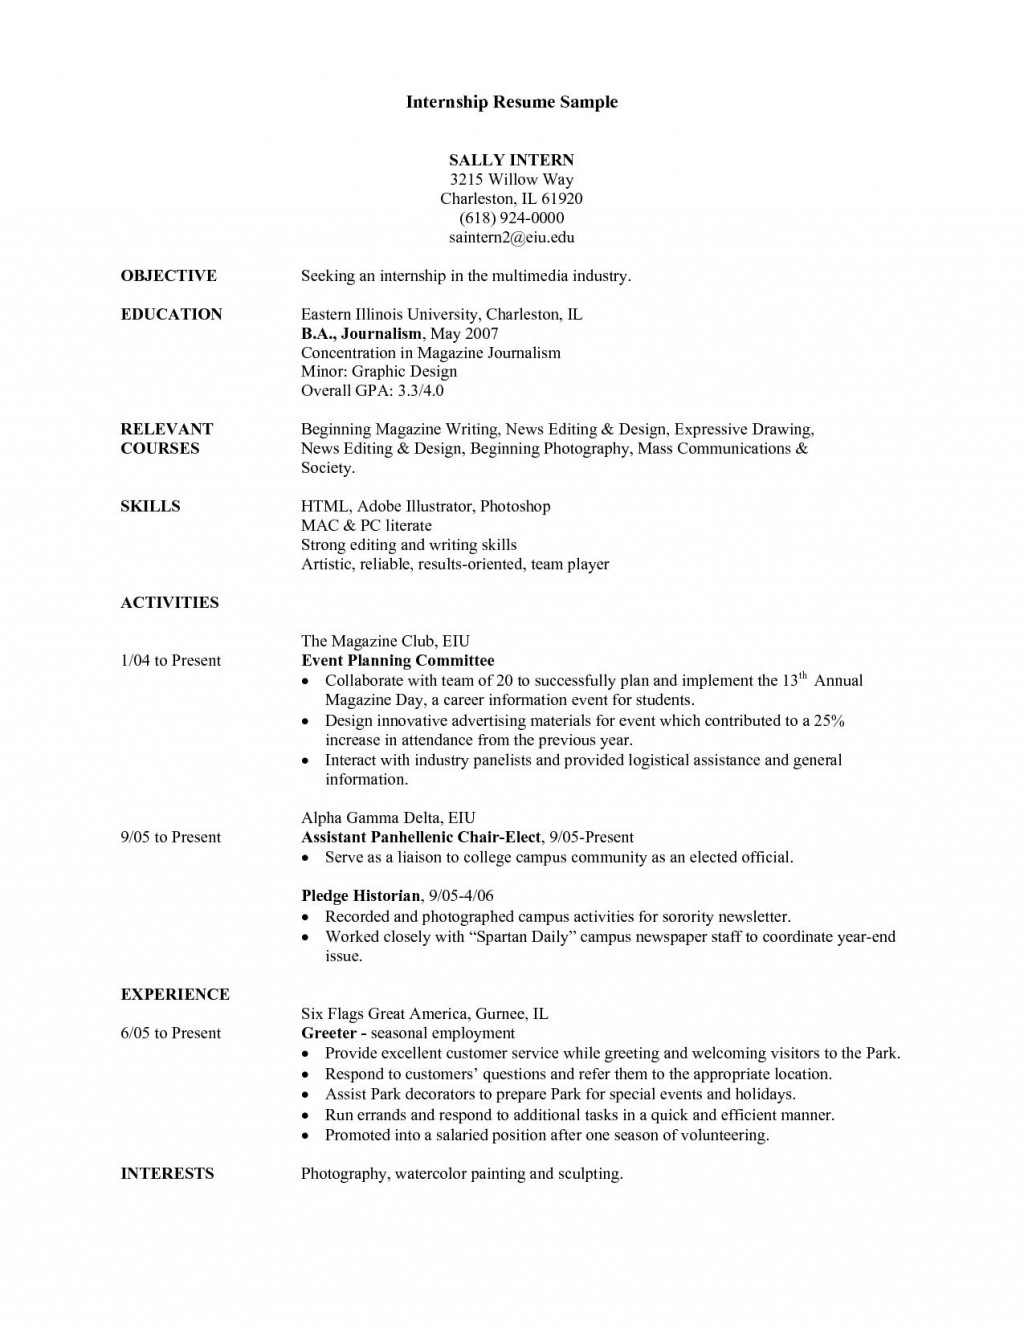 003 Phenomenal College Internship Resume Template Highest Quality  Student Job For DownloadLarge